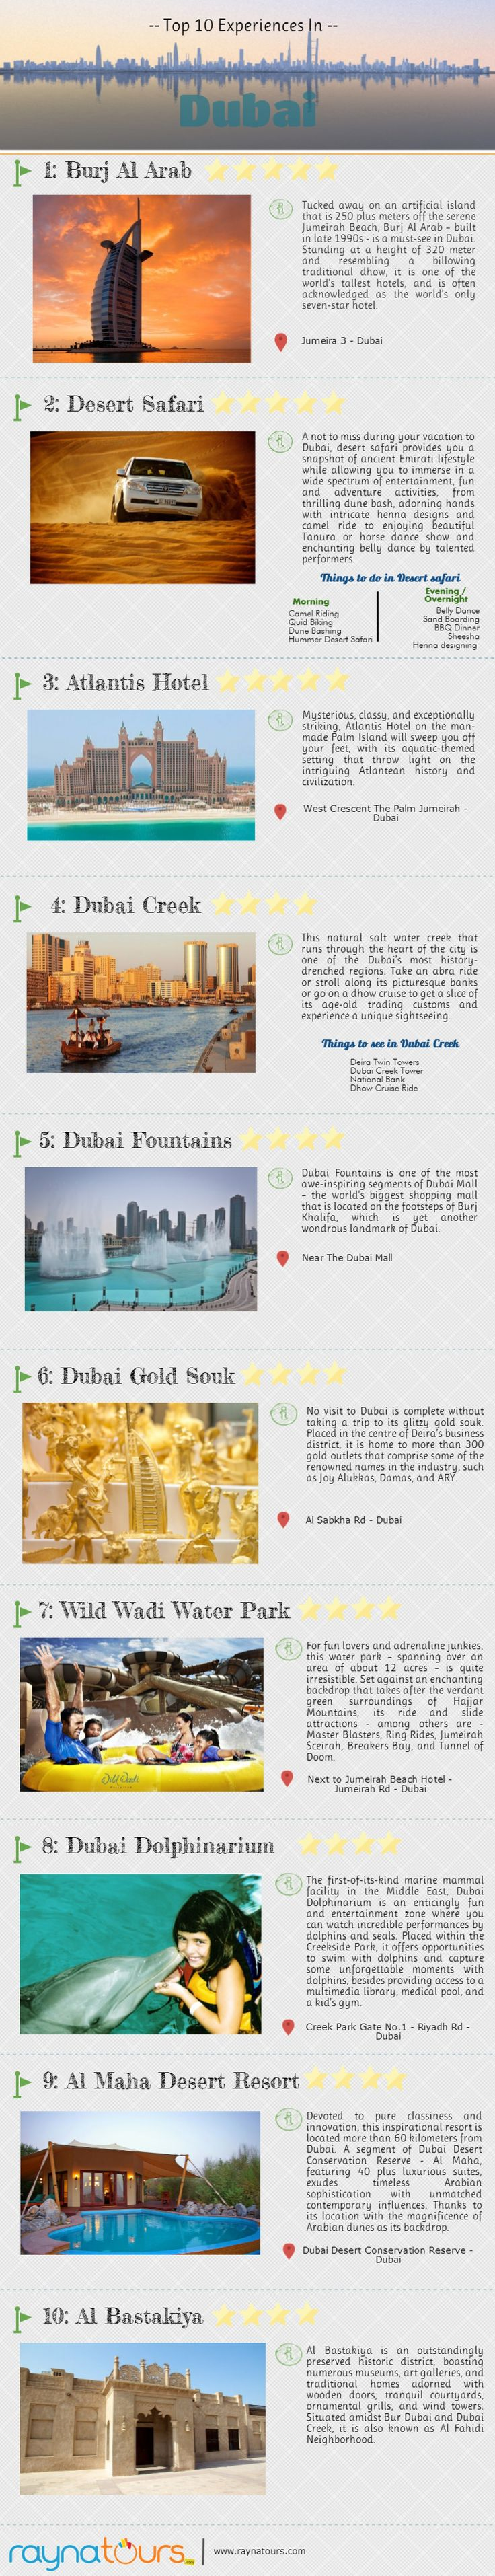 Top 10 Experiences in #Dubai